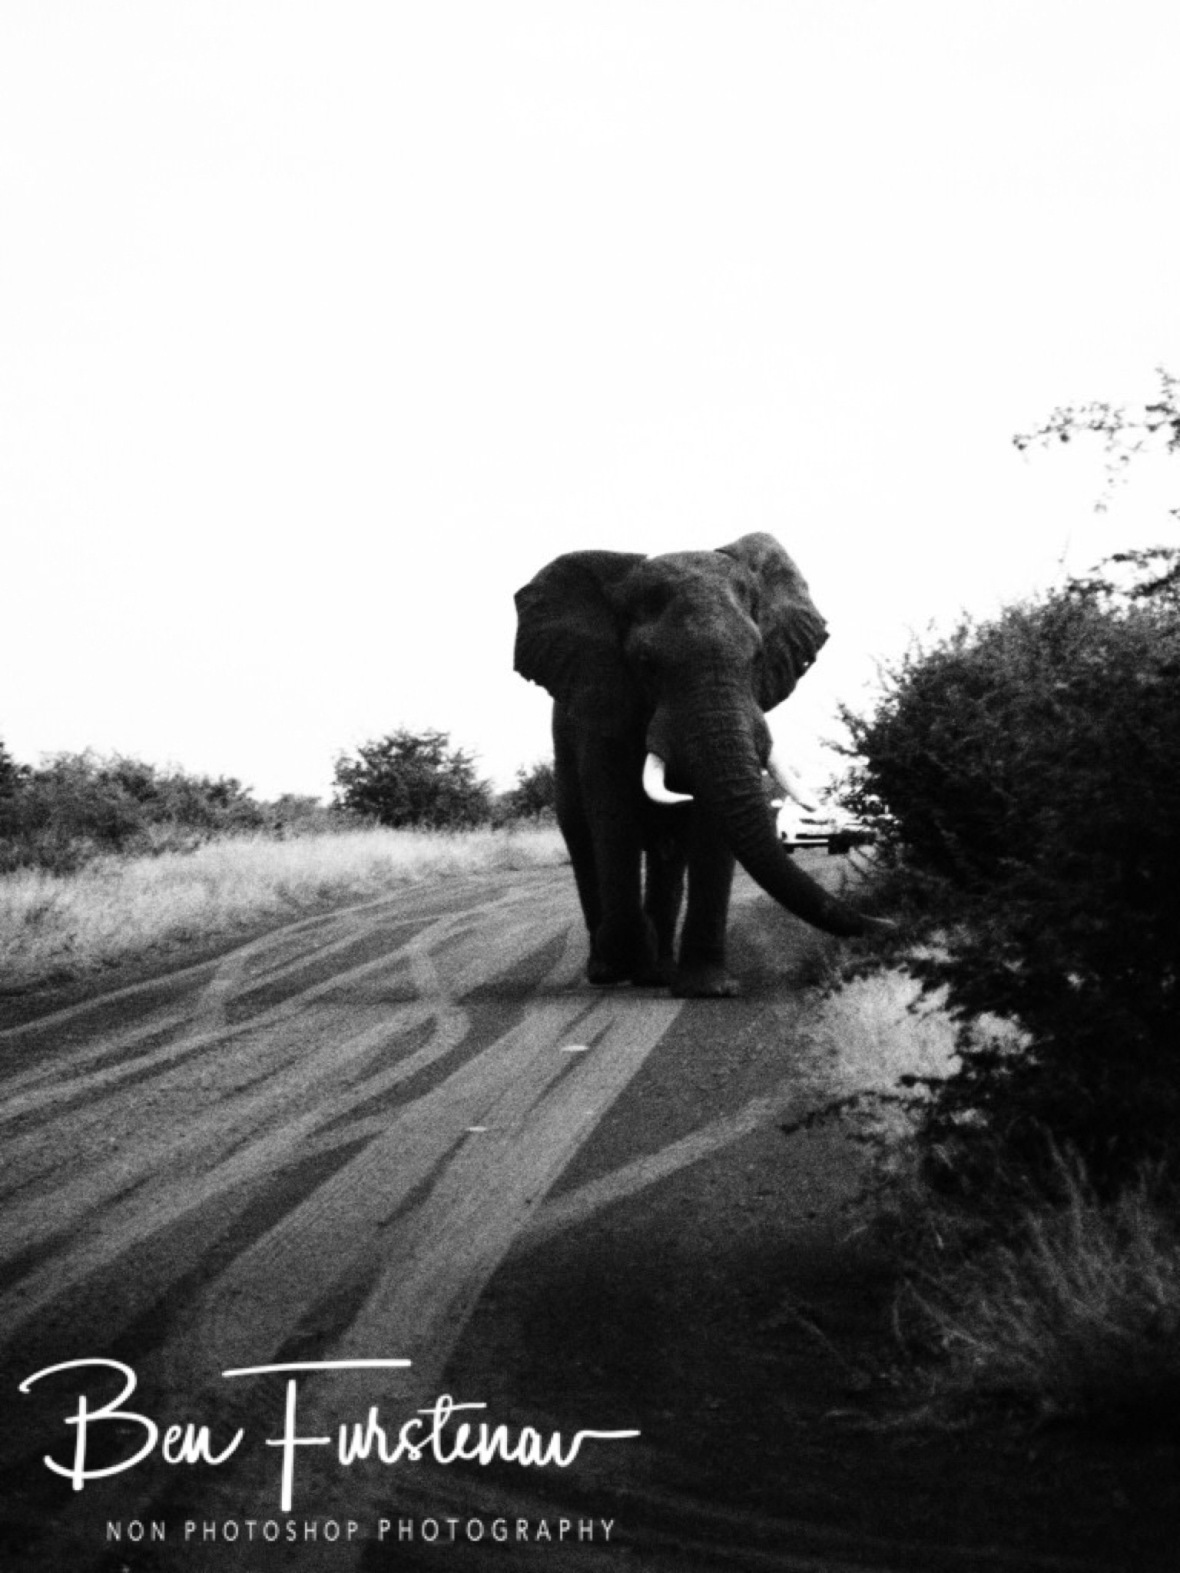 Bull elephant following car in Kruger National Park